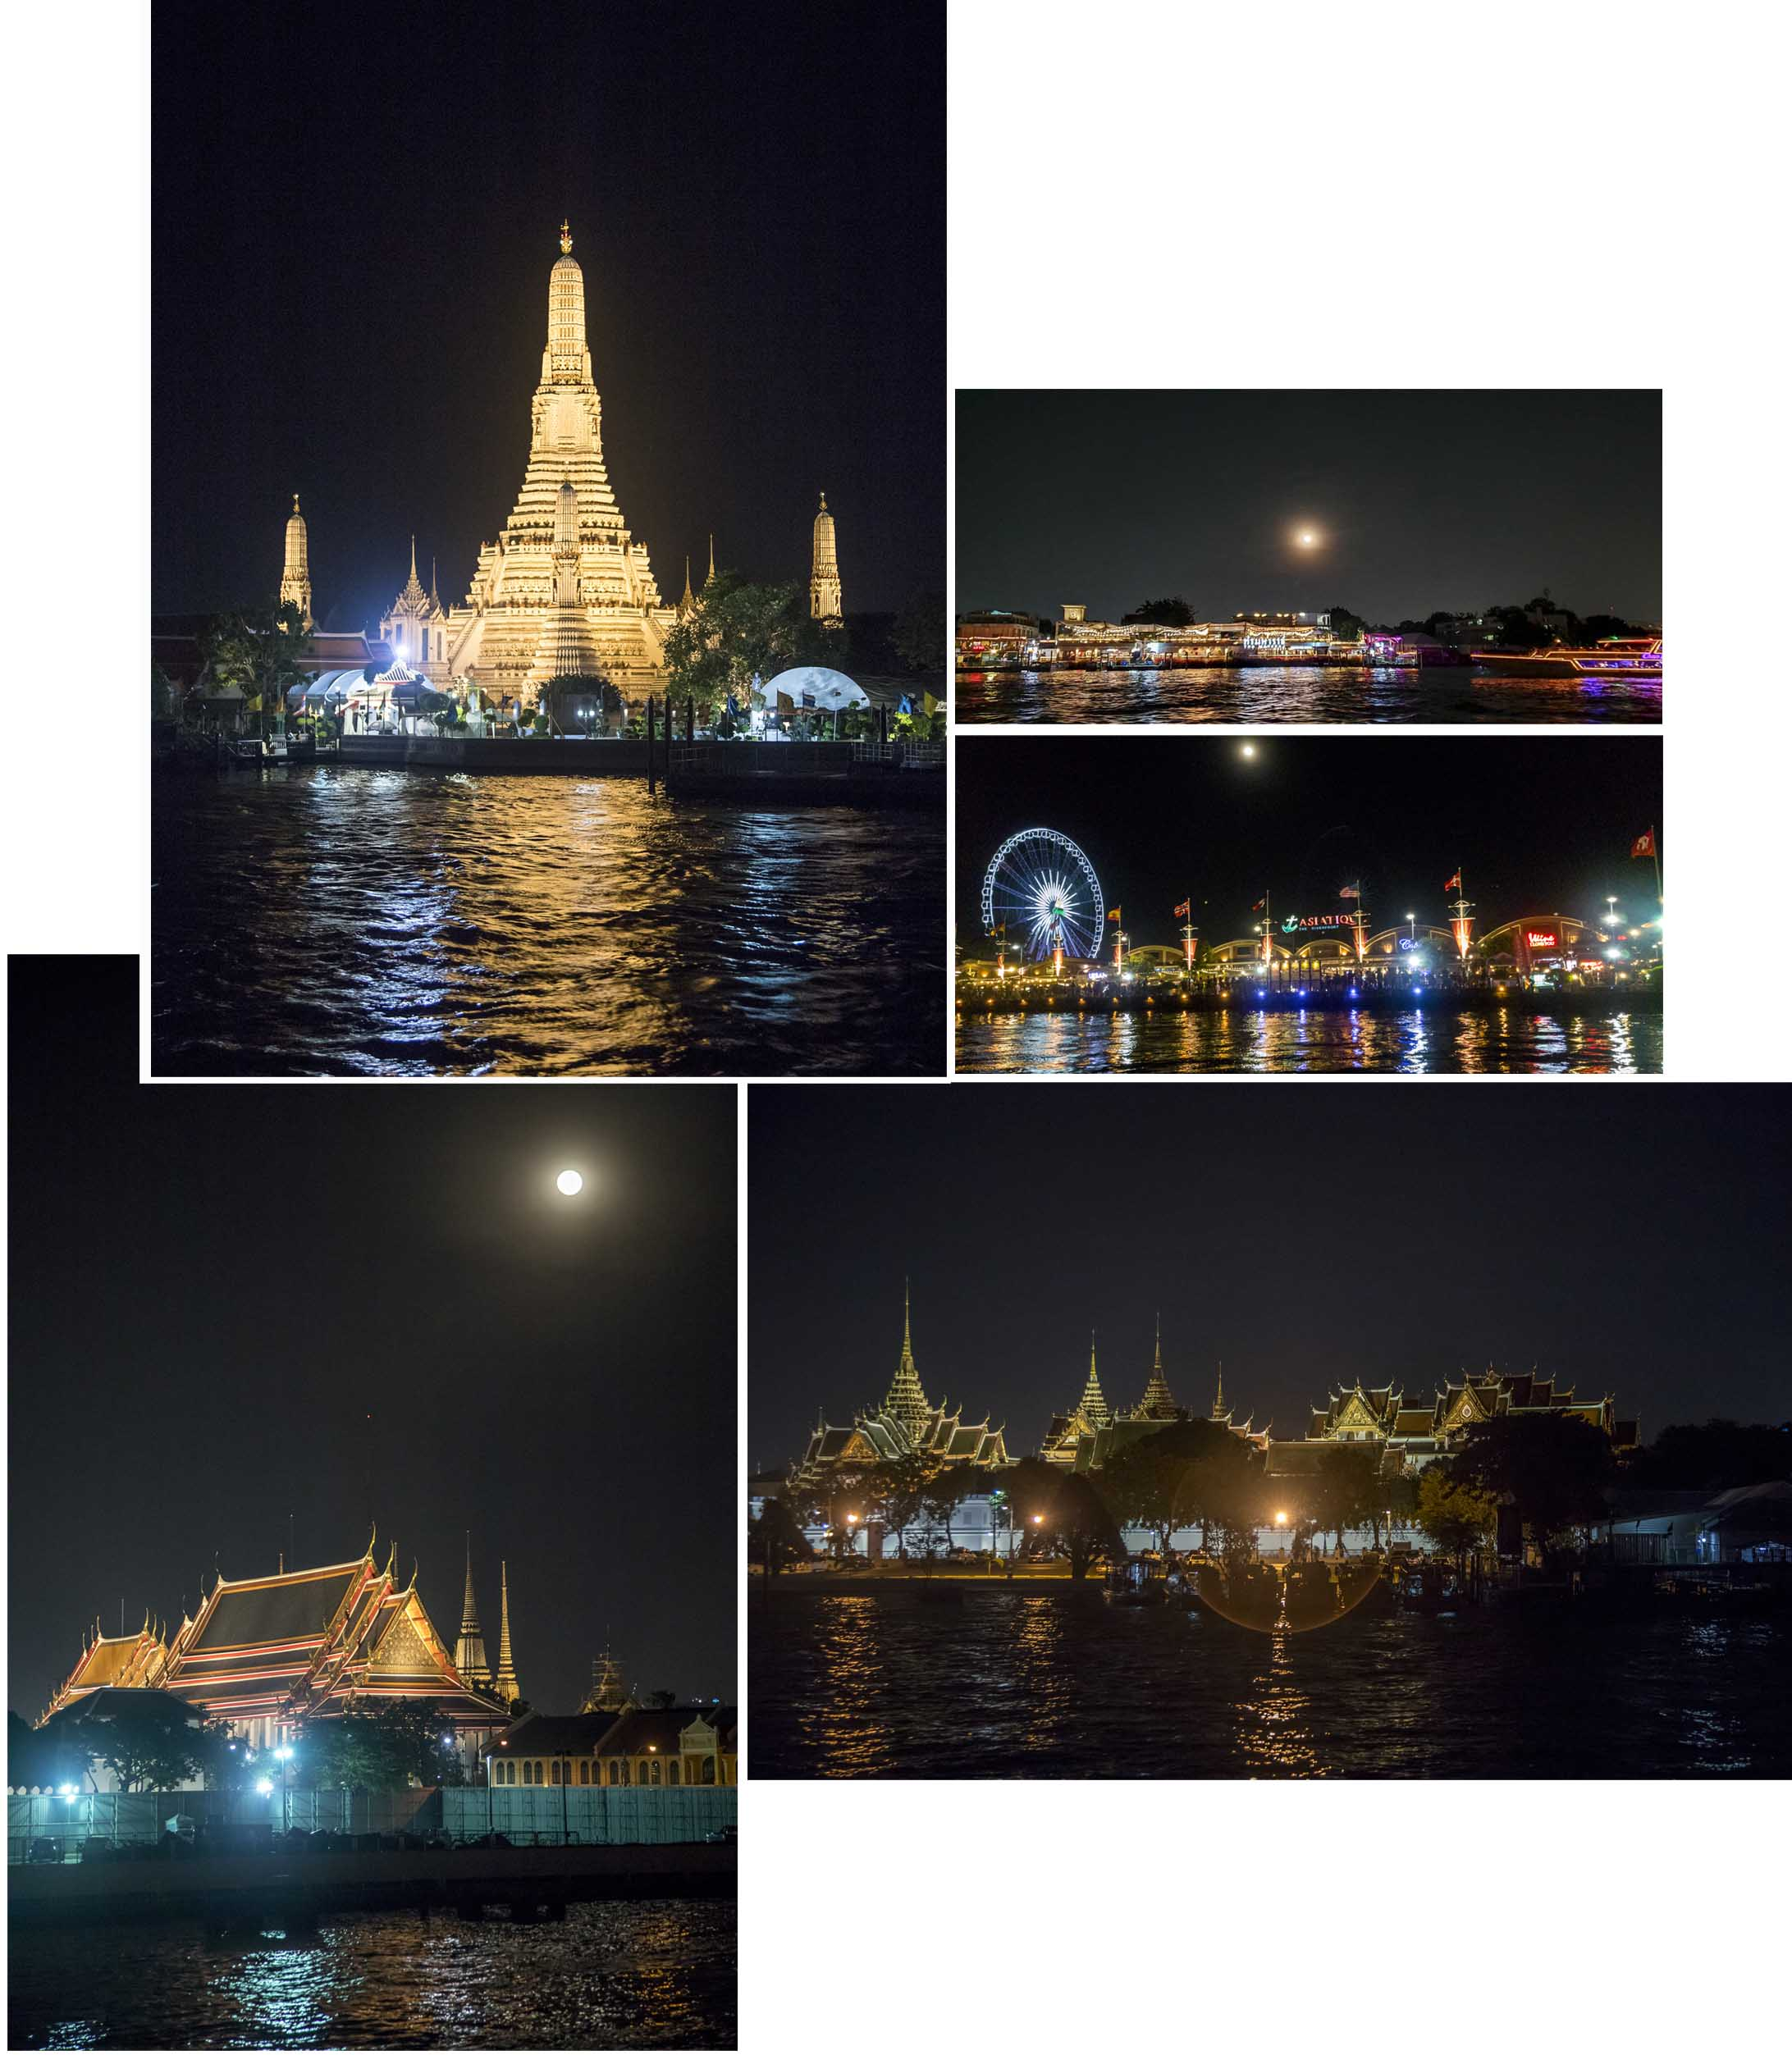 Cruising Chao Phraya in the evening